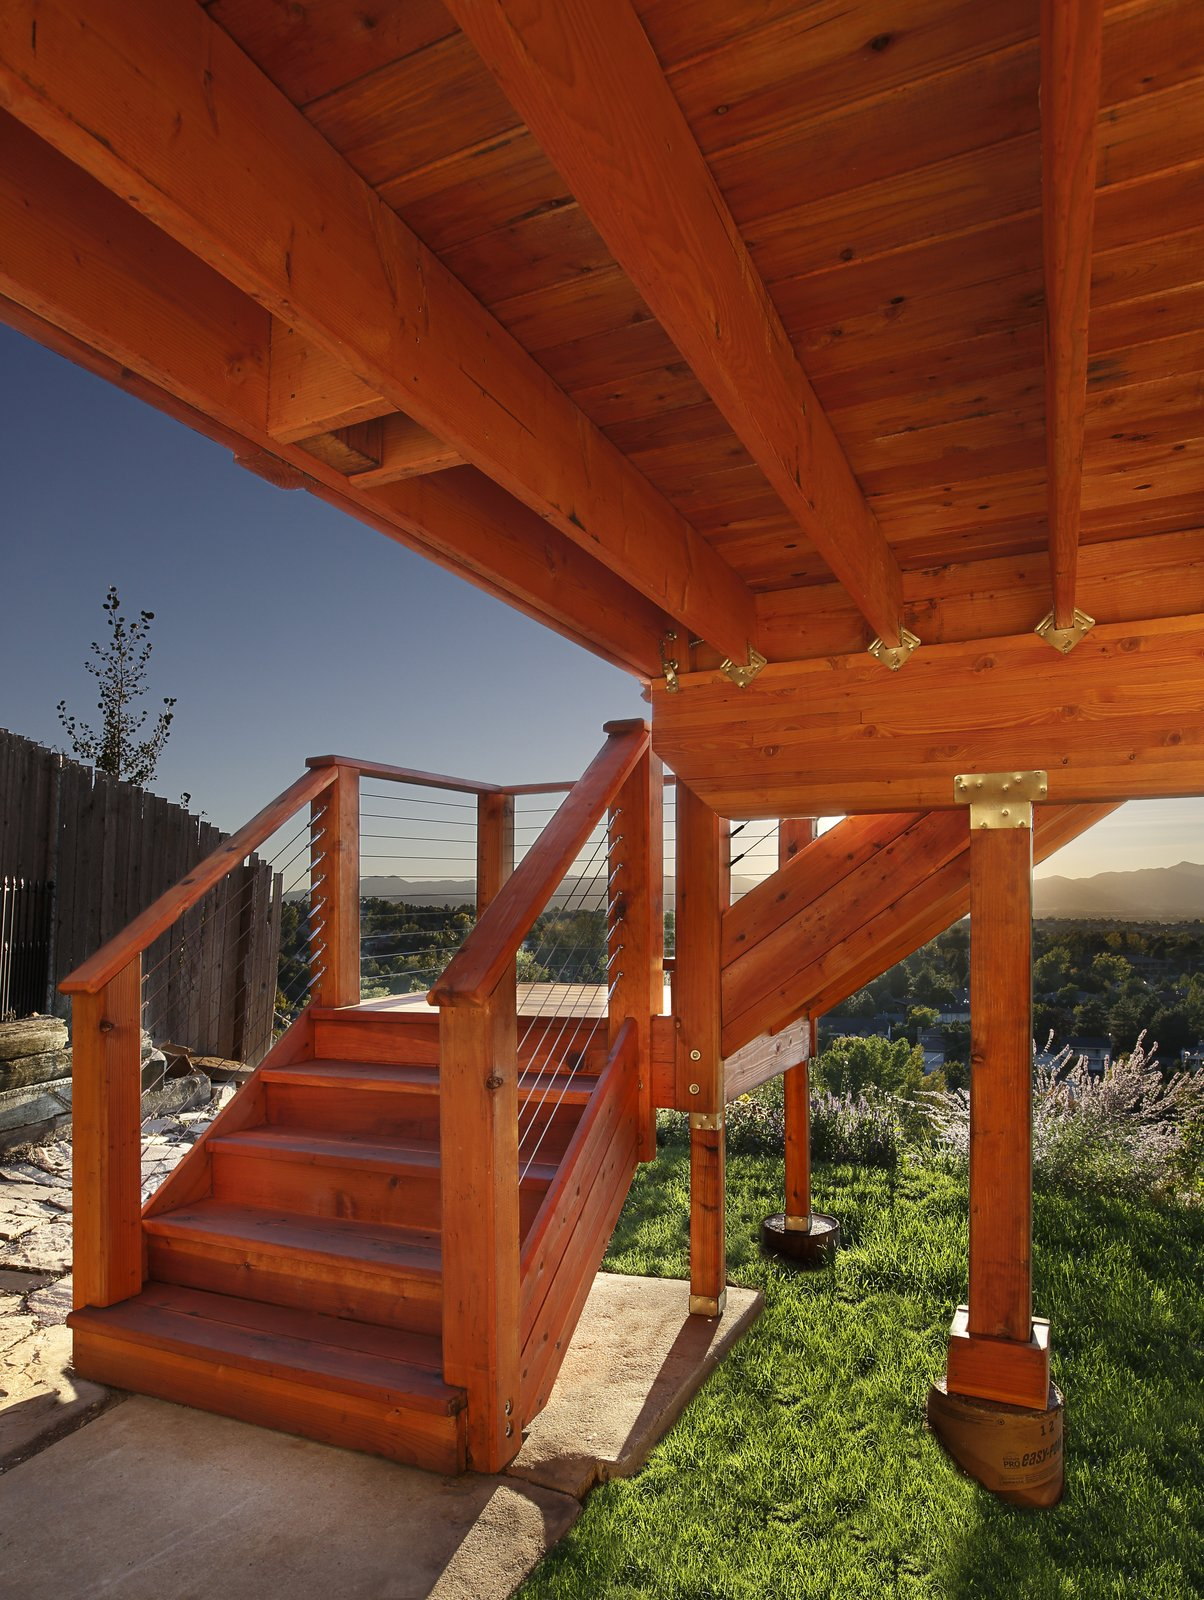 Redwood decks require less substructure and building material. While other materials require 12- to 16-inch spans from joist to joist, redwood's shear strength allows for 24-inch spans.  Photo 4 of 7 in Beauty and Brains: Building Sustainably With Redwood